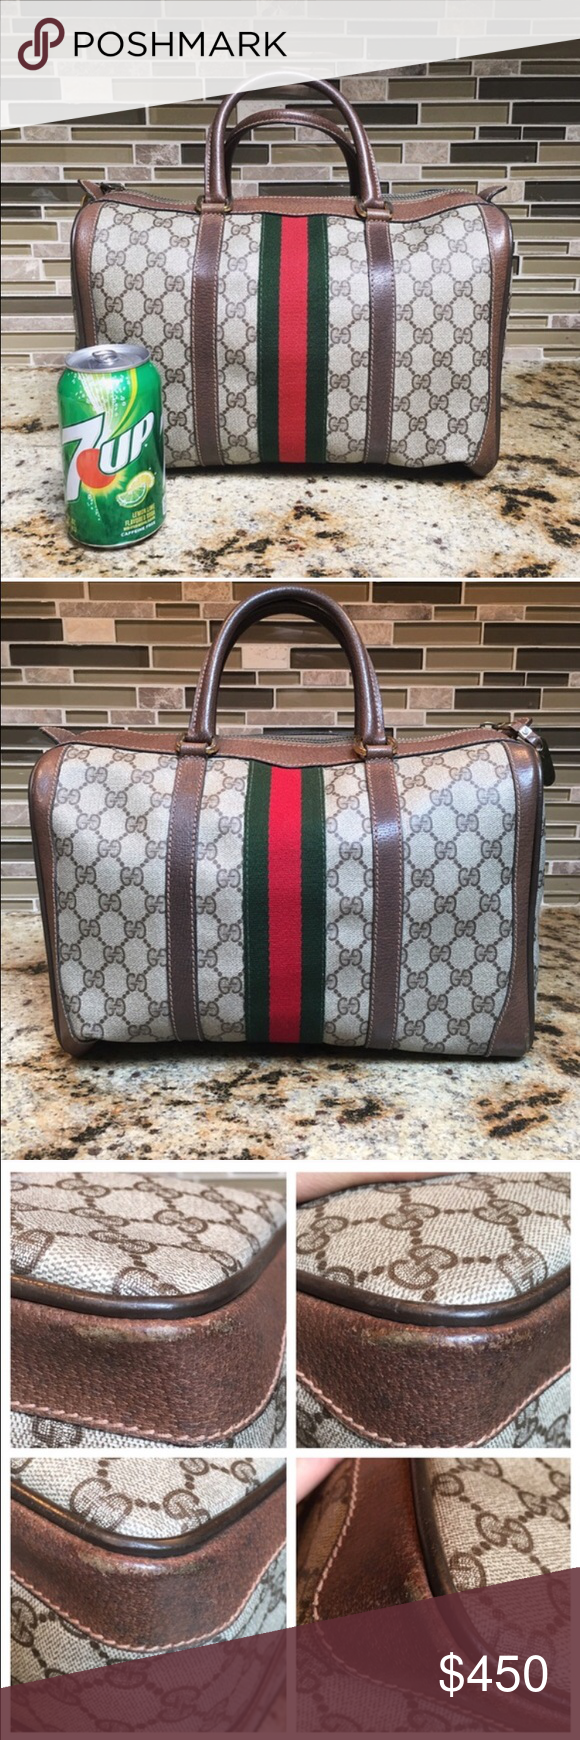 Authentic Vintage Gucci Boston Speedy Bag From 70s The